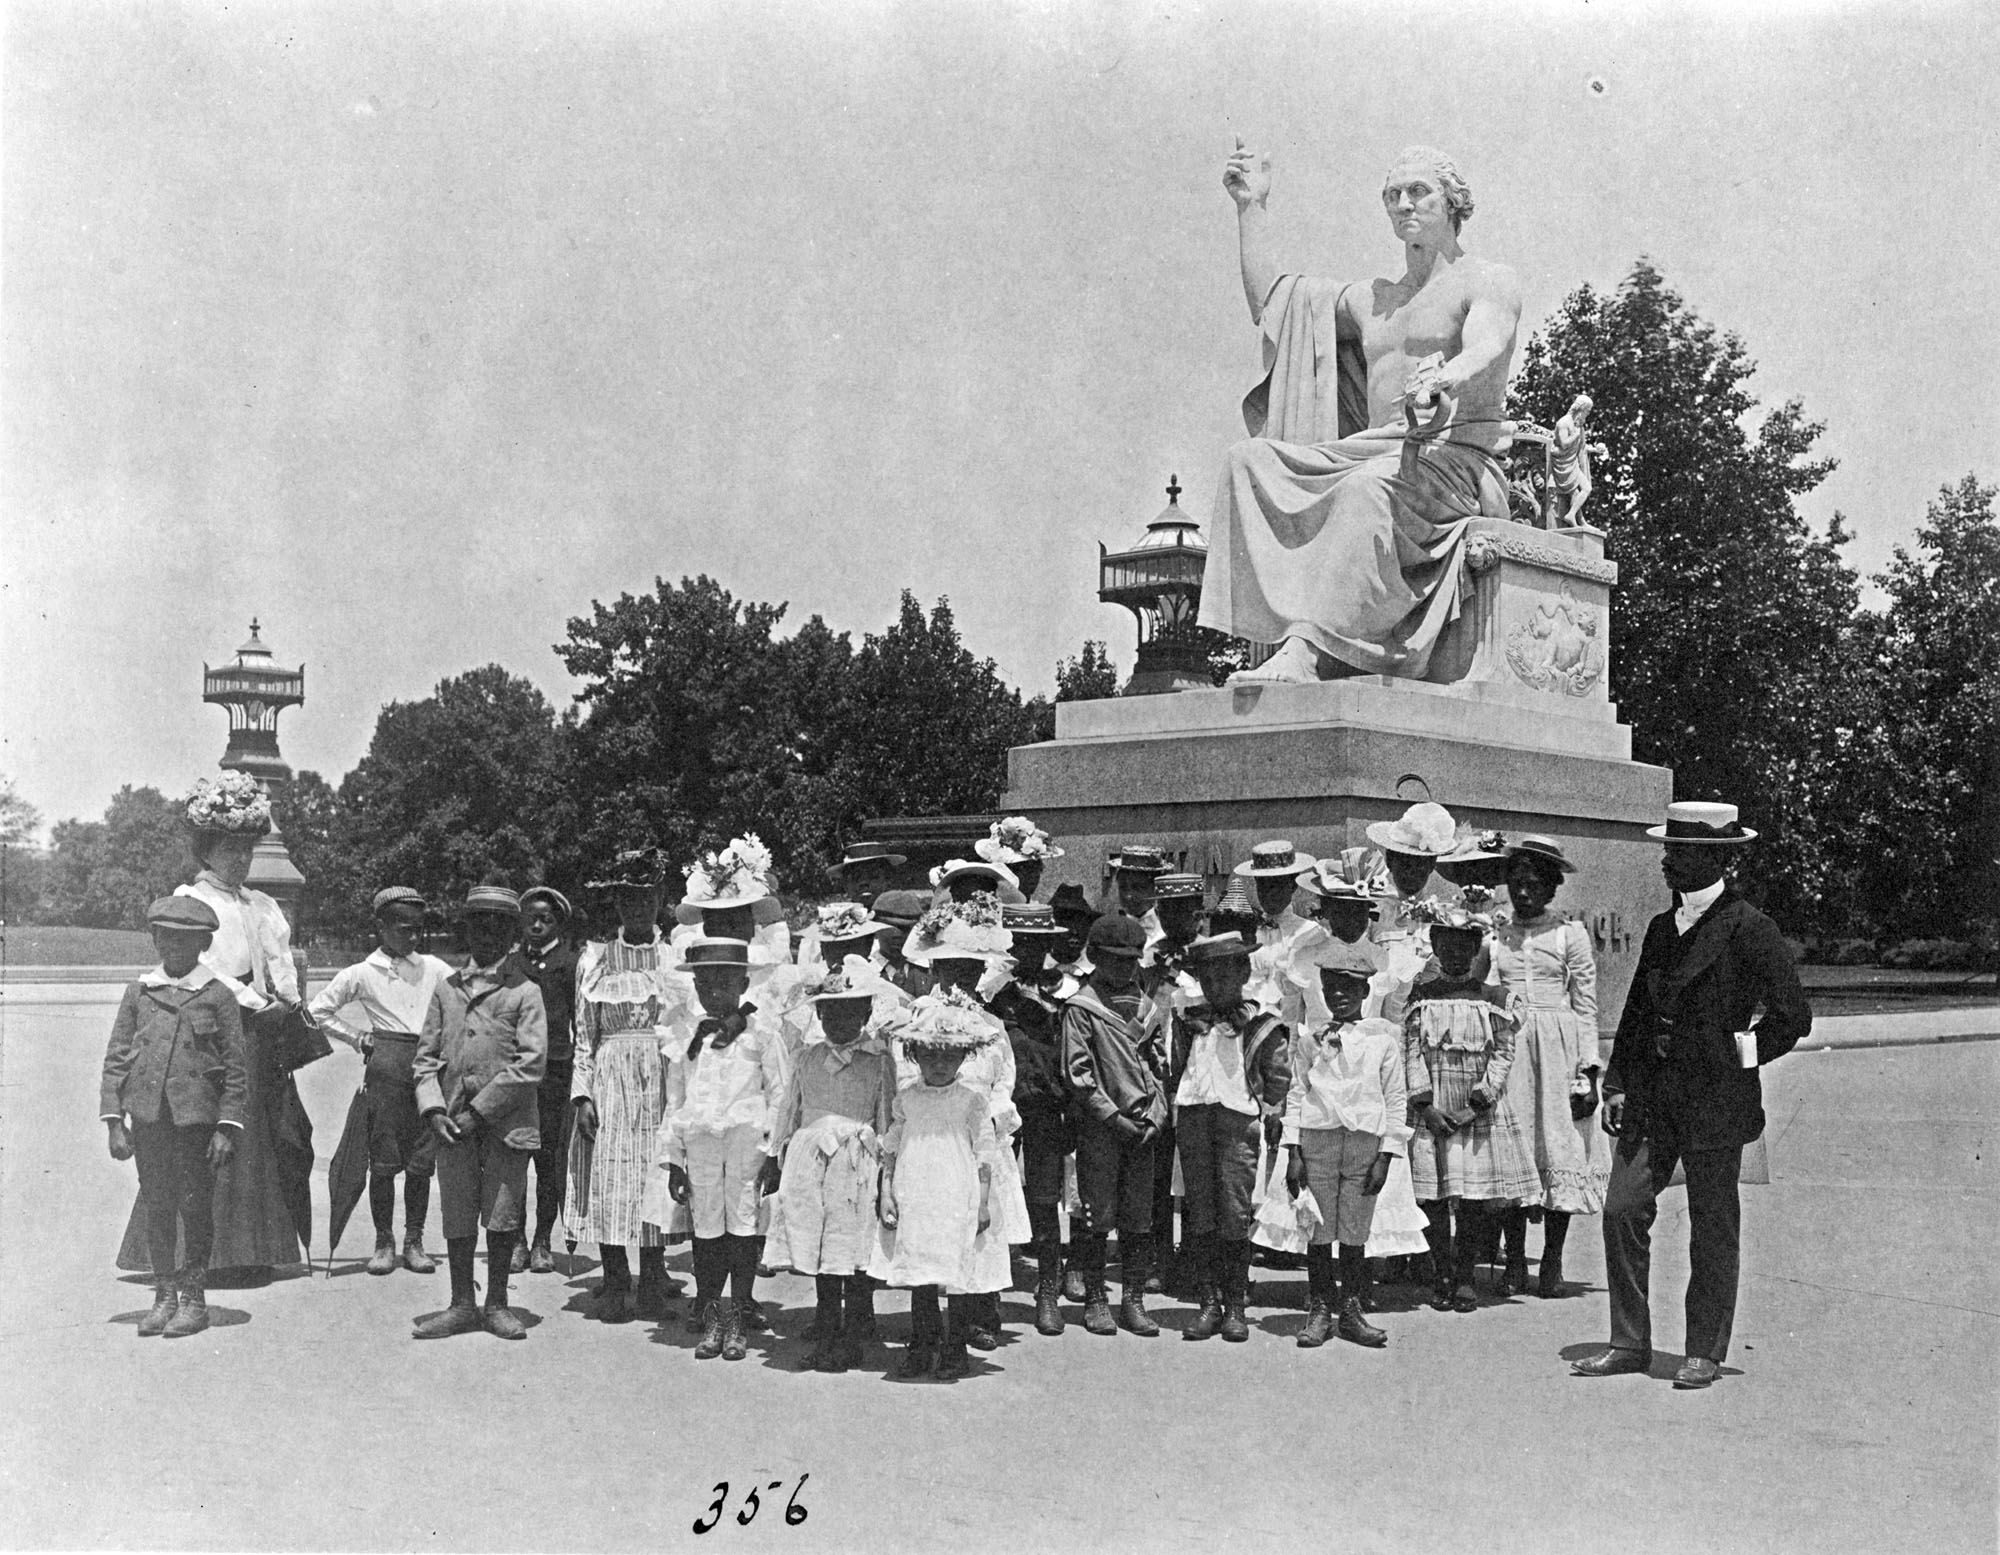 Group of school children in front of statue of George Washington, Washington, D.C.